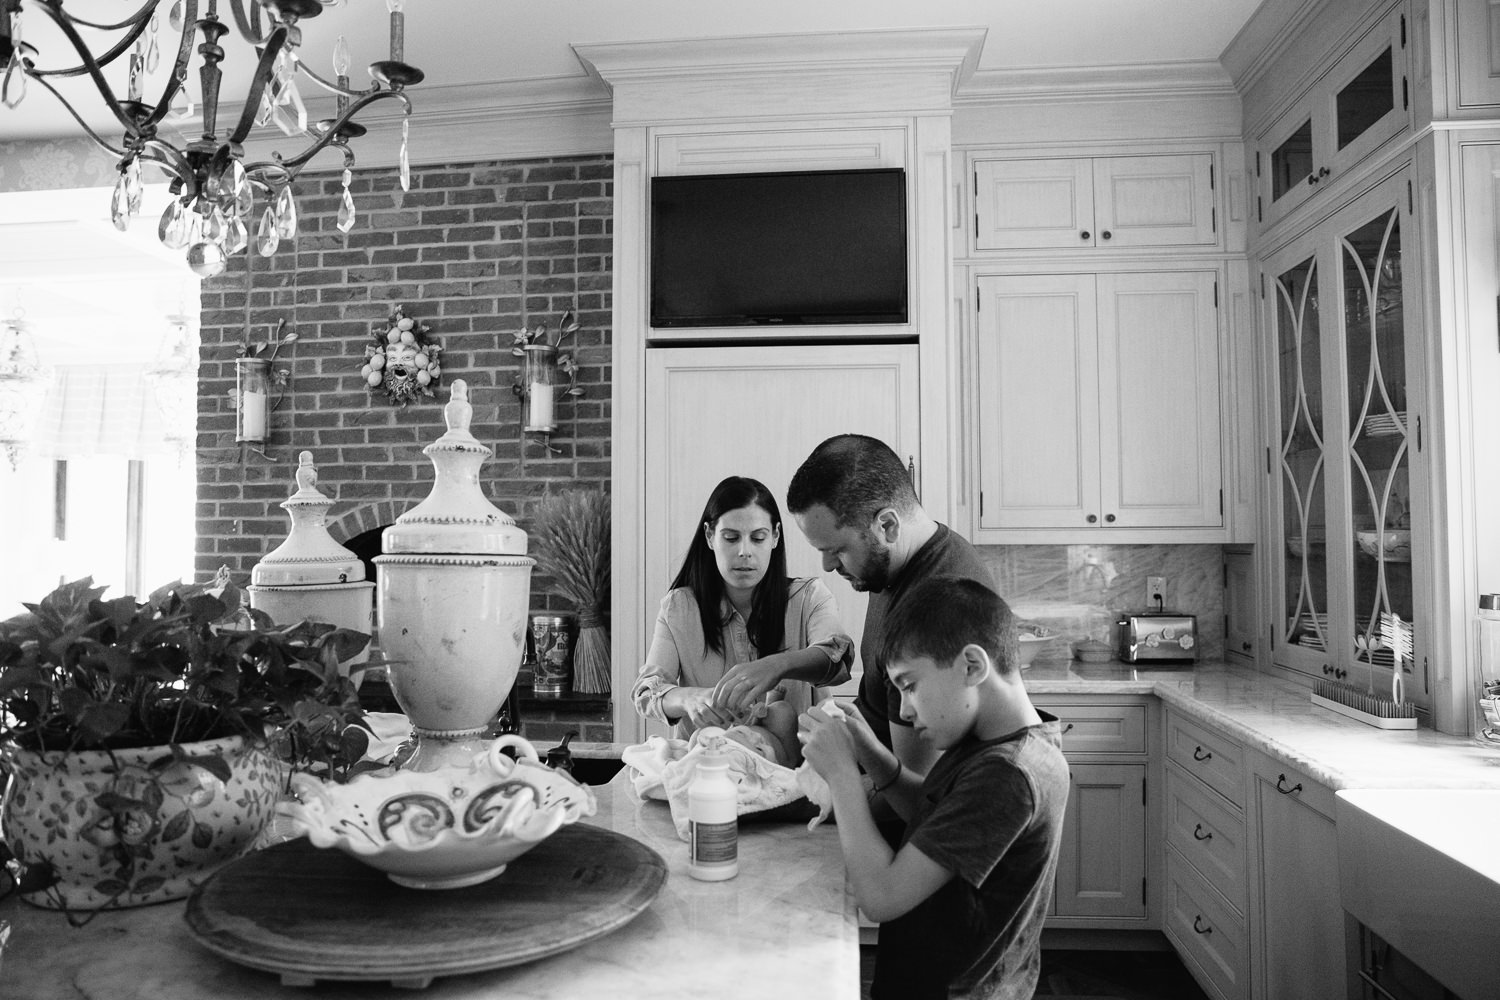 mom, dad and 9 year old brother standing around kitchen island drying off and dressing 2 month old baby girl after her sink bath - Stouffville In-Home Photos